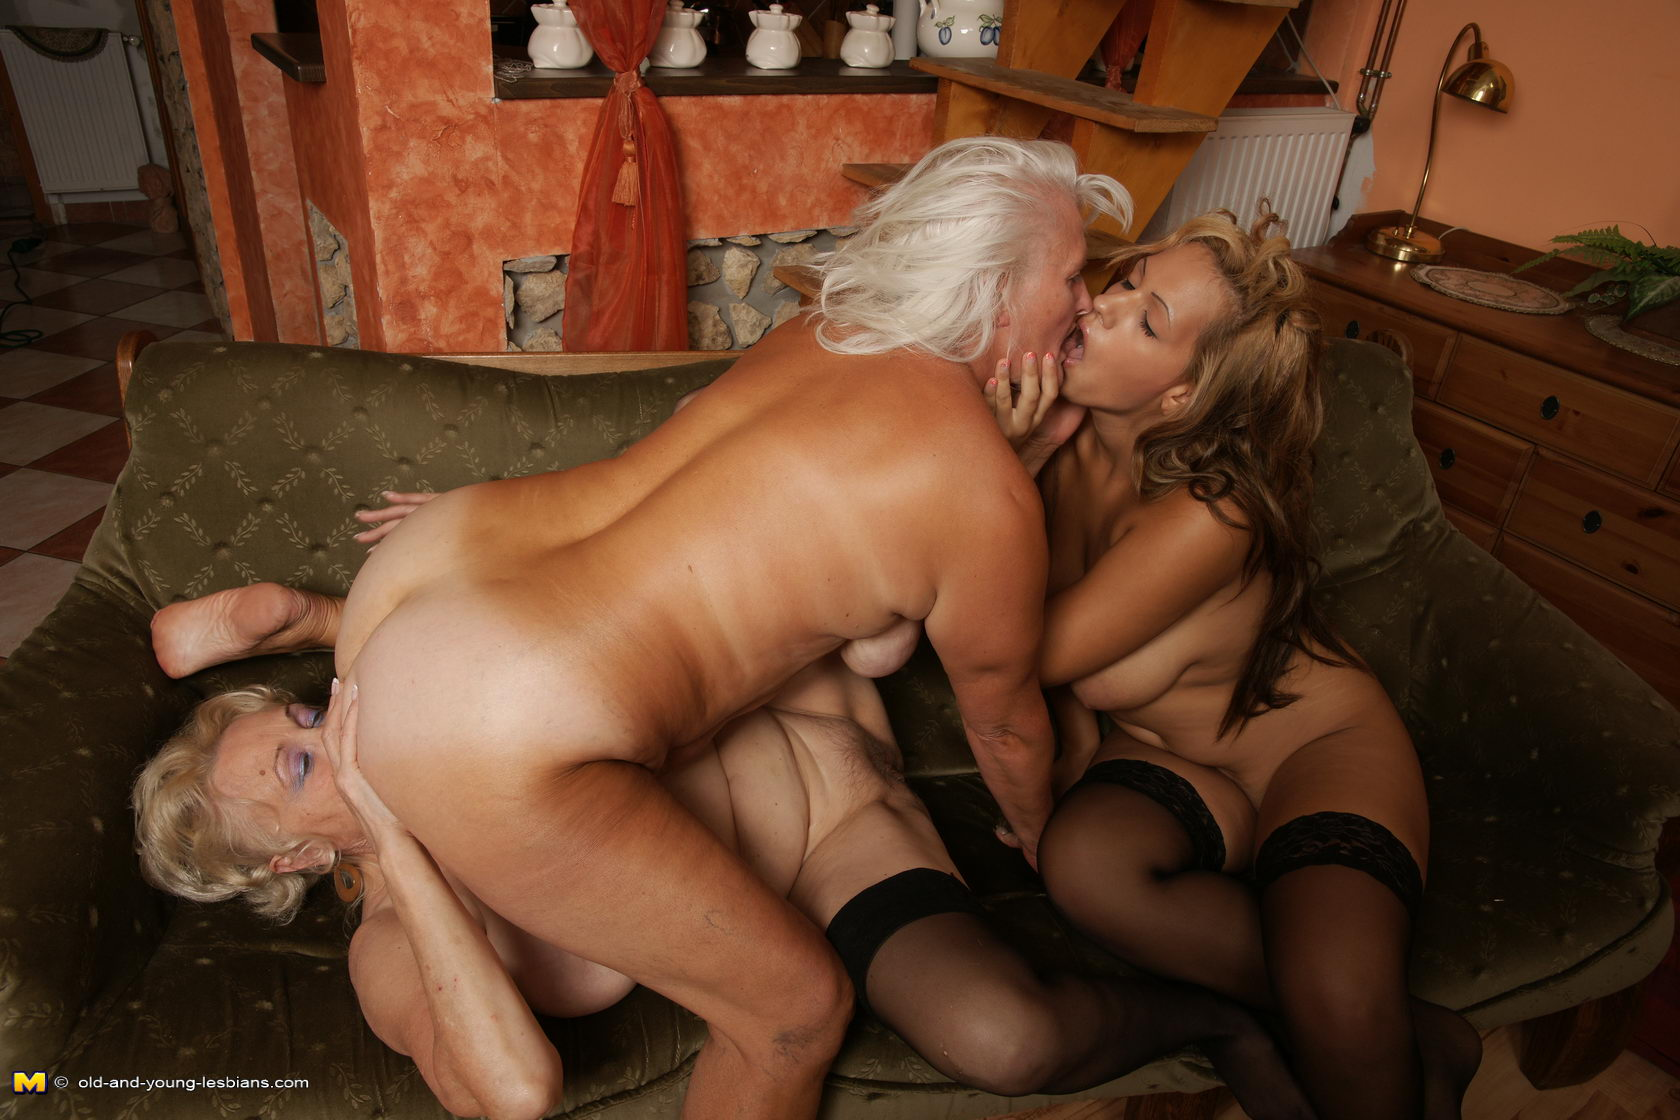 dian lane sex scenes